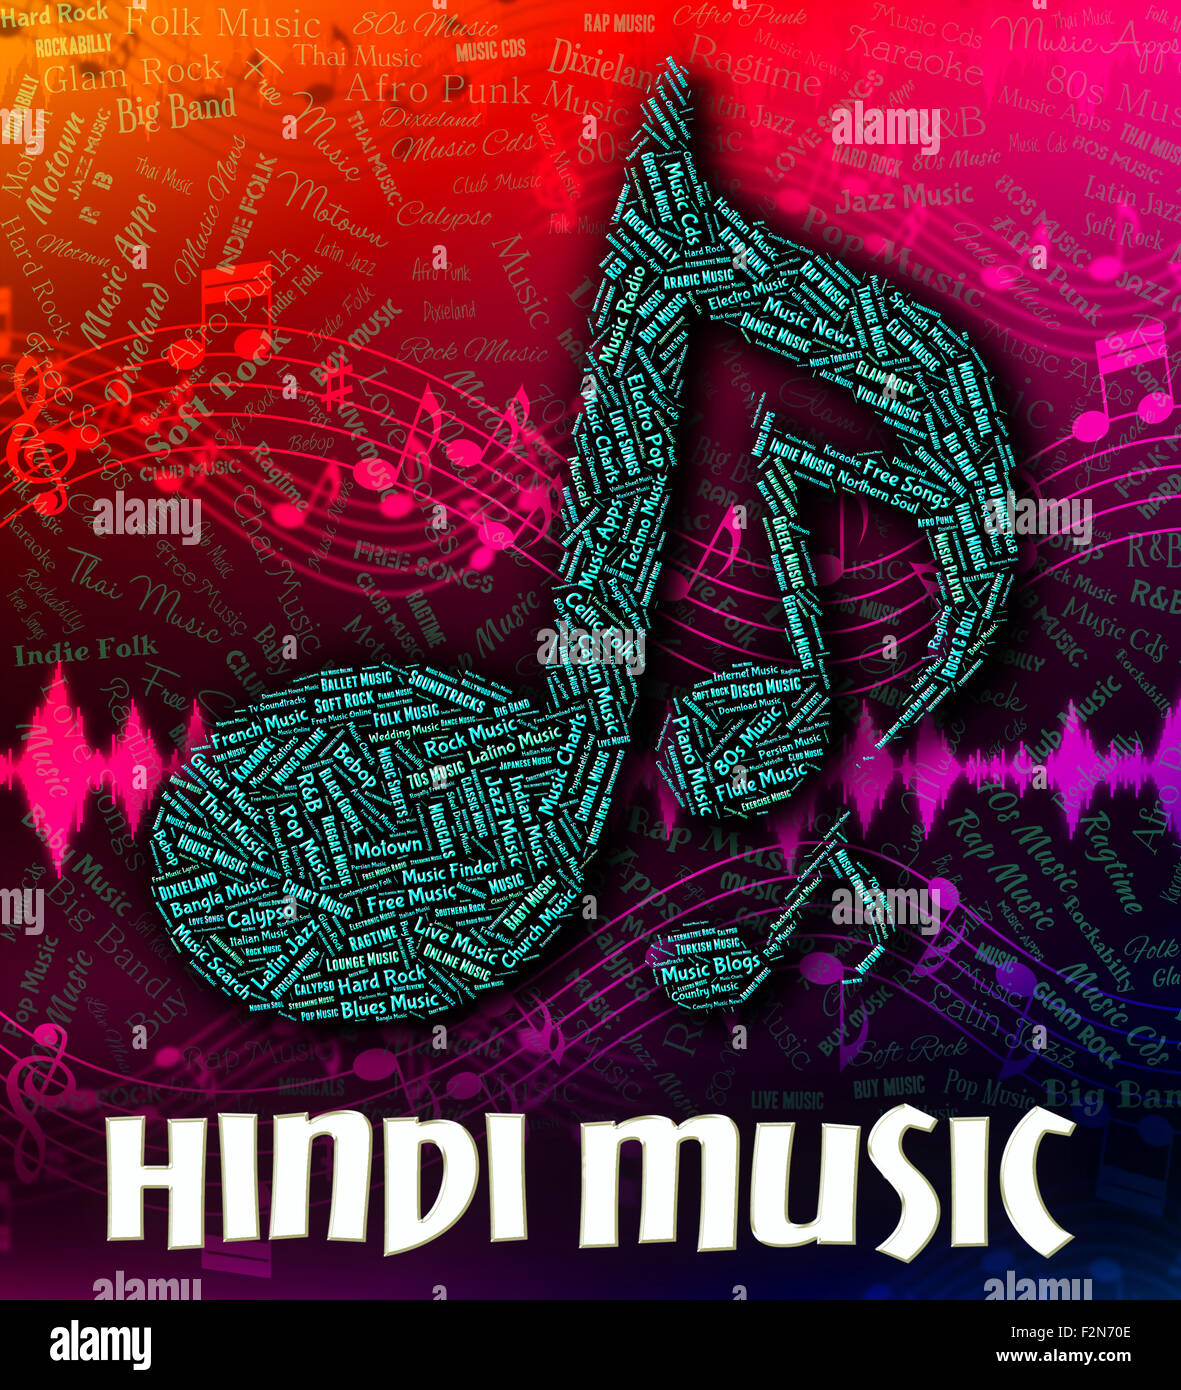 Hindi Music Indicating Sound Track And Indian Stock Photo: 87747646